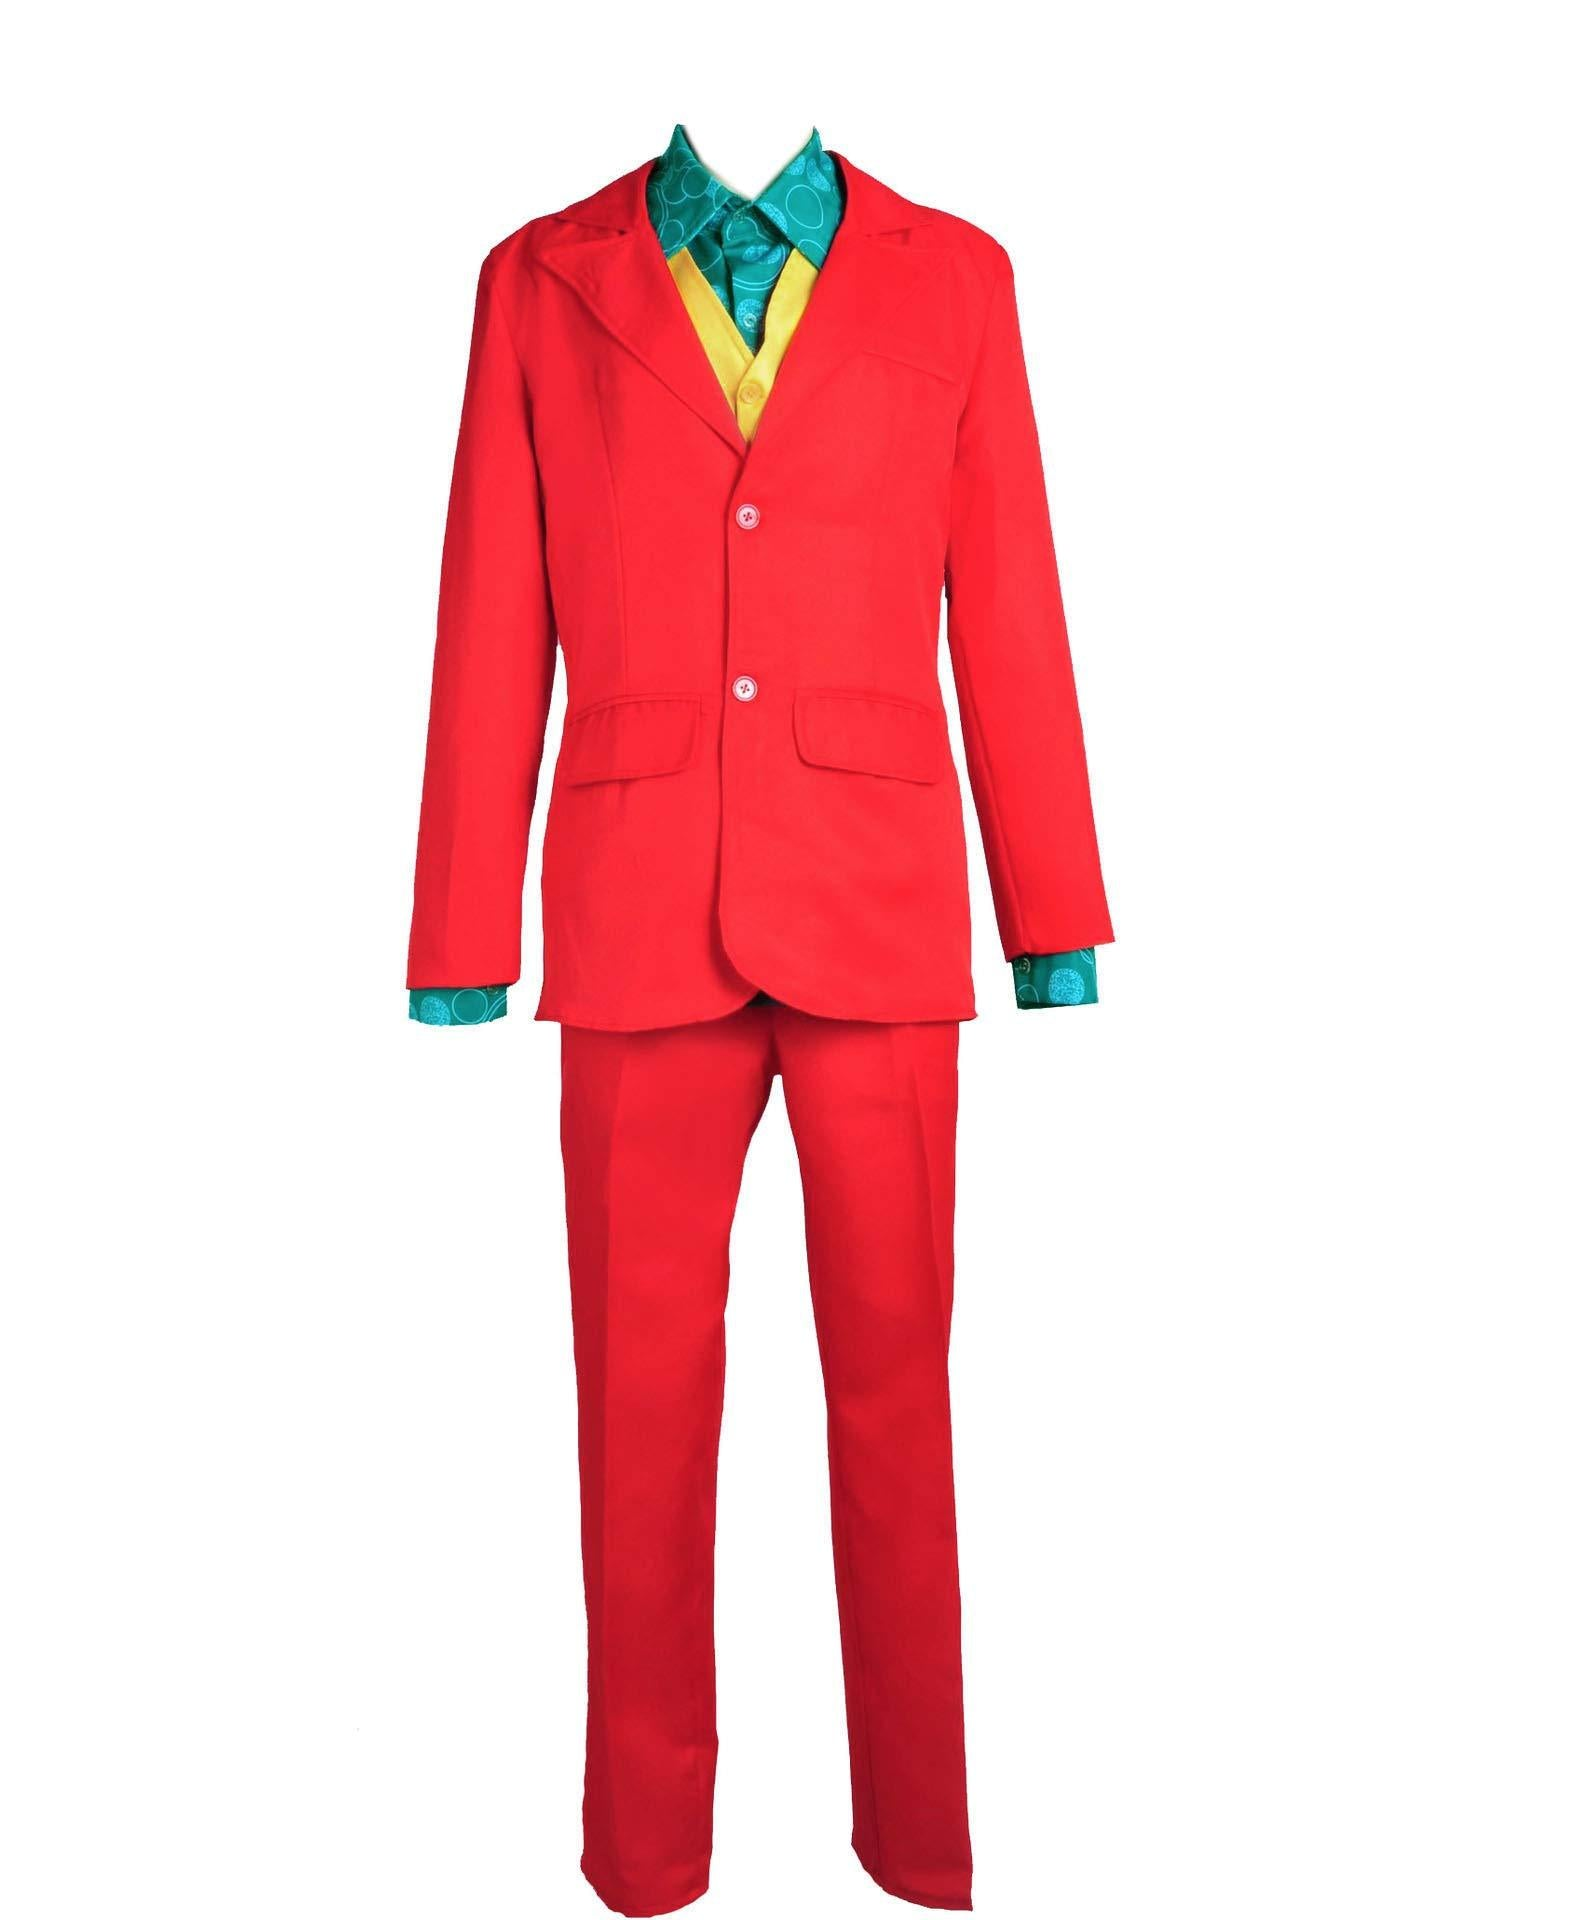 All in one - Men's Joker Halloween Costume